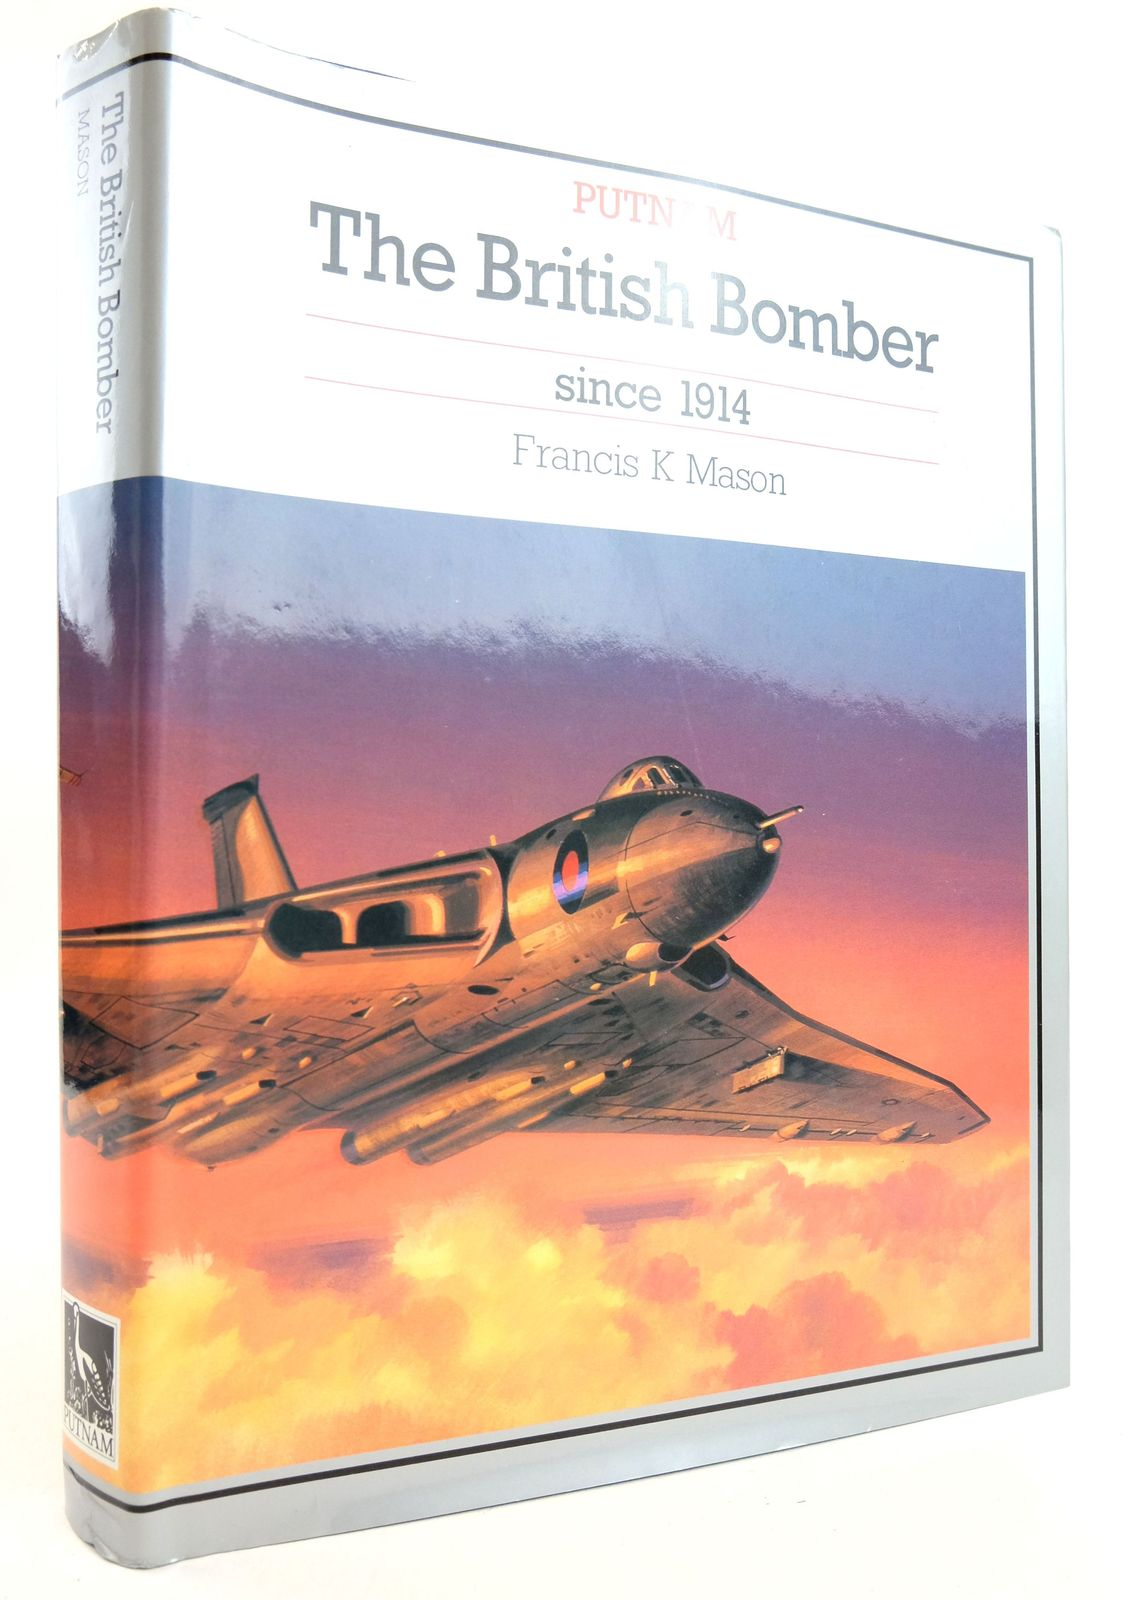 Photo of THE BRITISH BOMBER SINCE 1914 written by Mason, Francis K. published by Putnam Aeronautical Books (STOCK CODE: 1819834)  for sale by Stella & Rose's Books